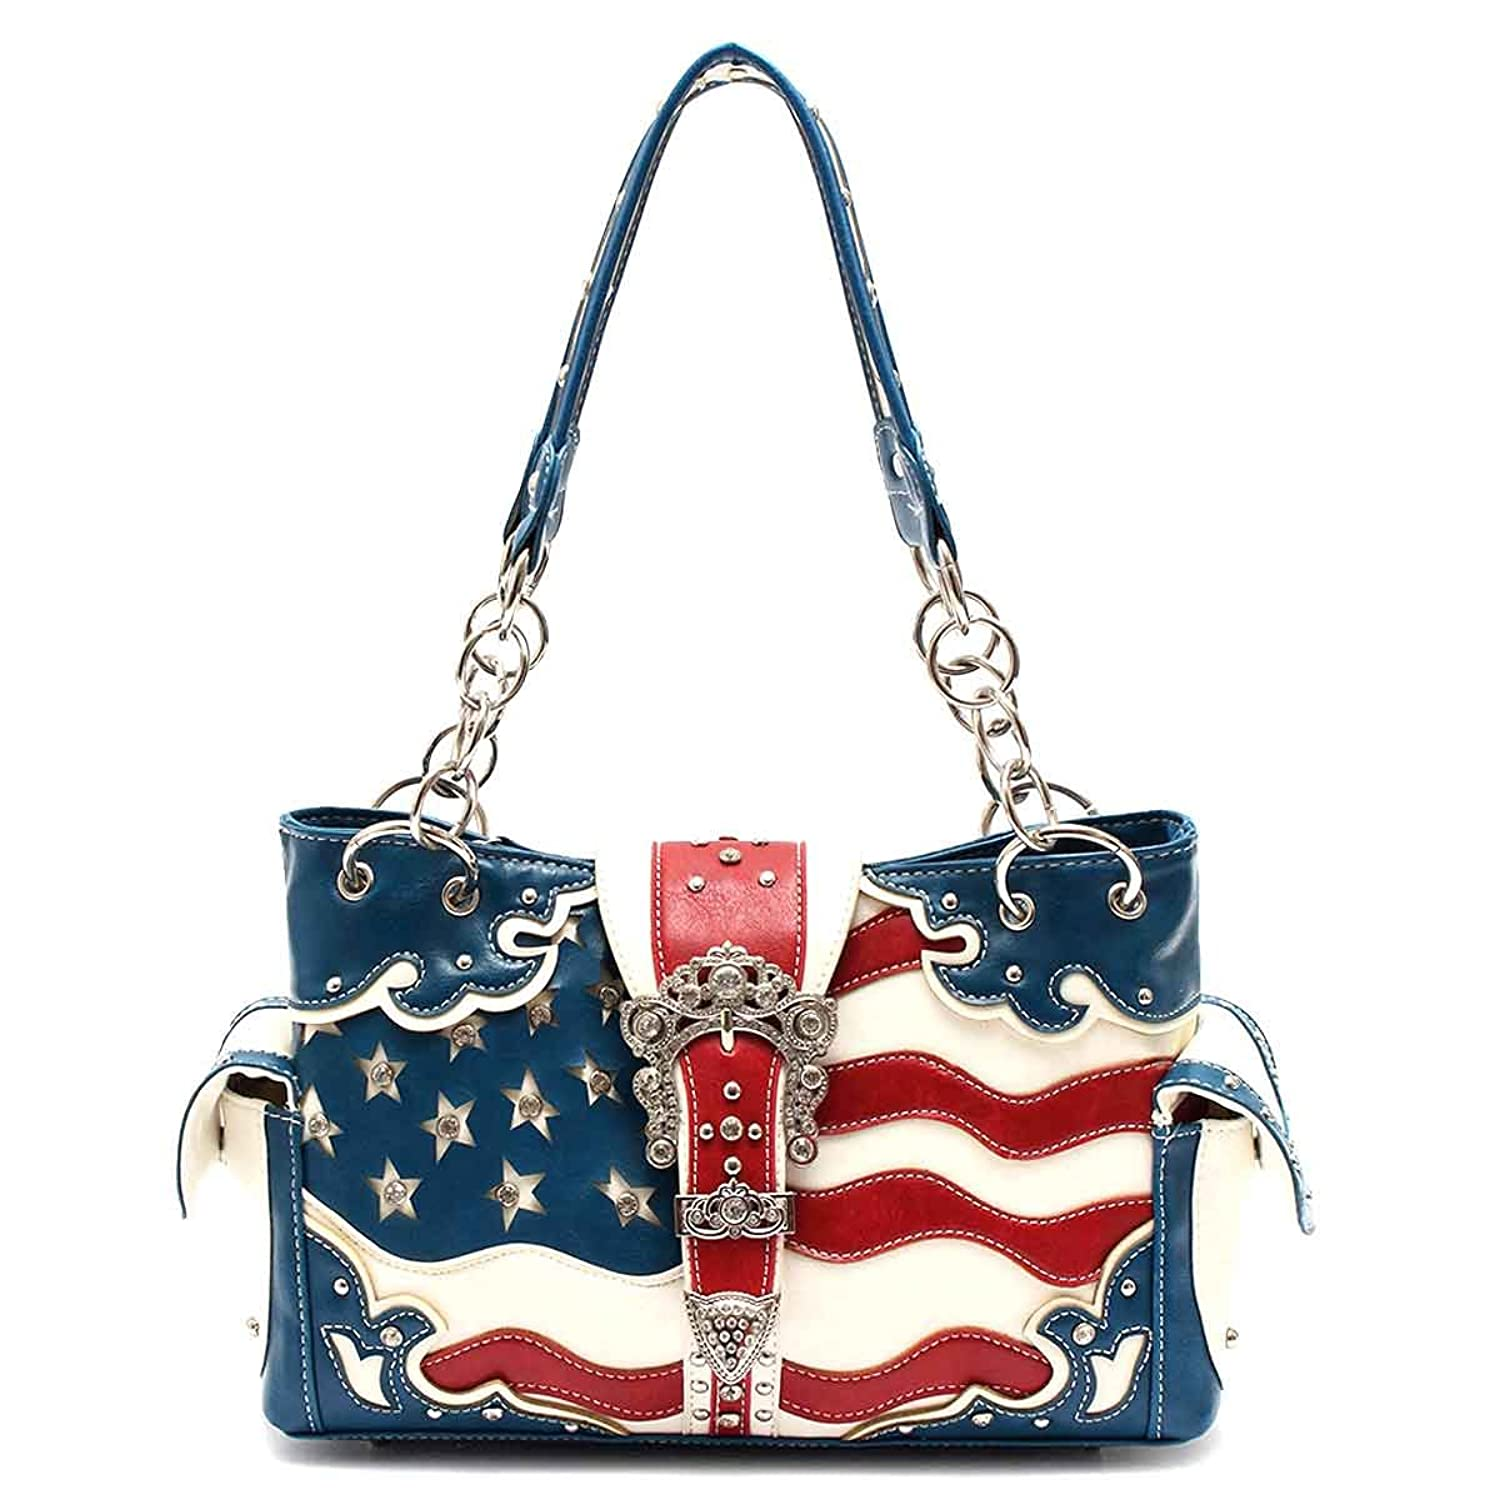 Western American Flag Purse Satchel, Plus Key Chain